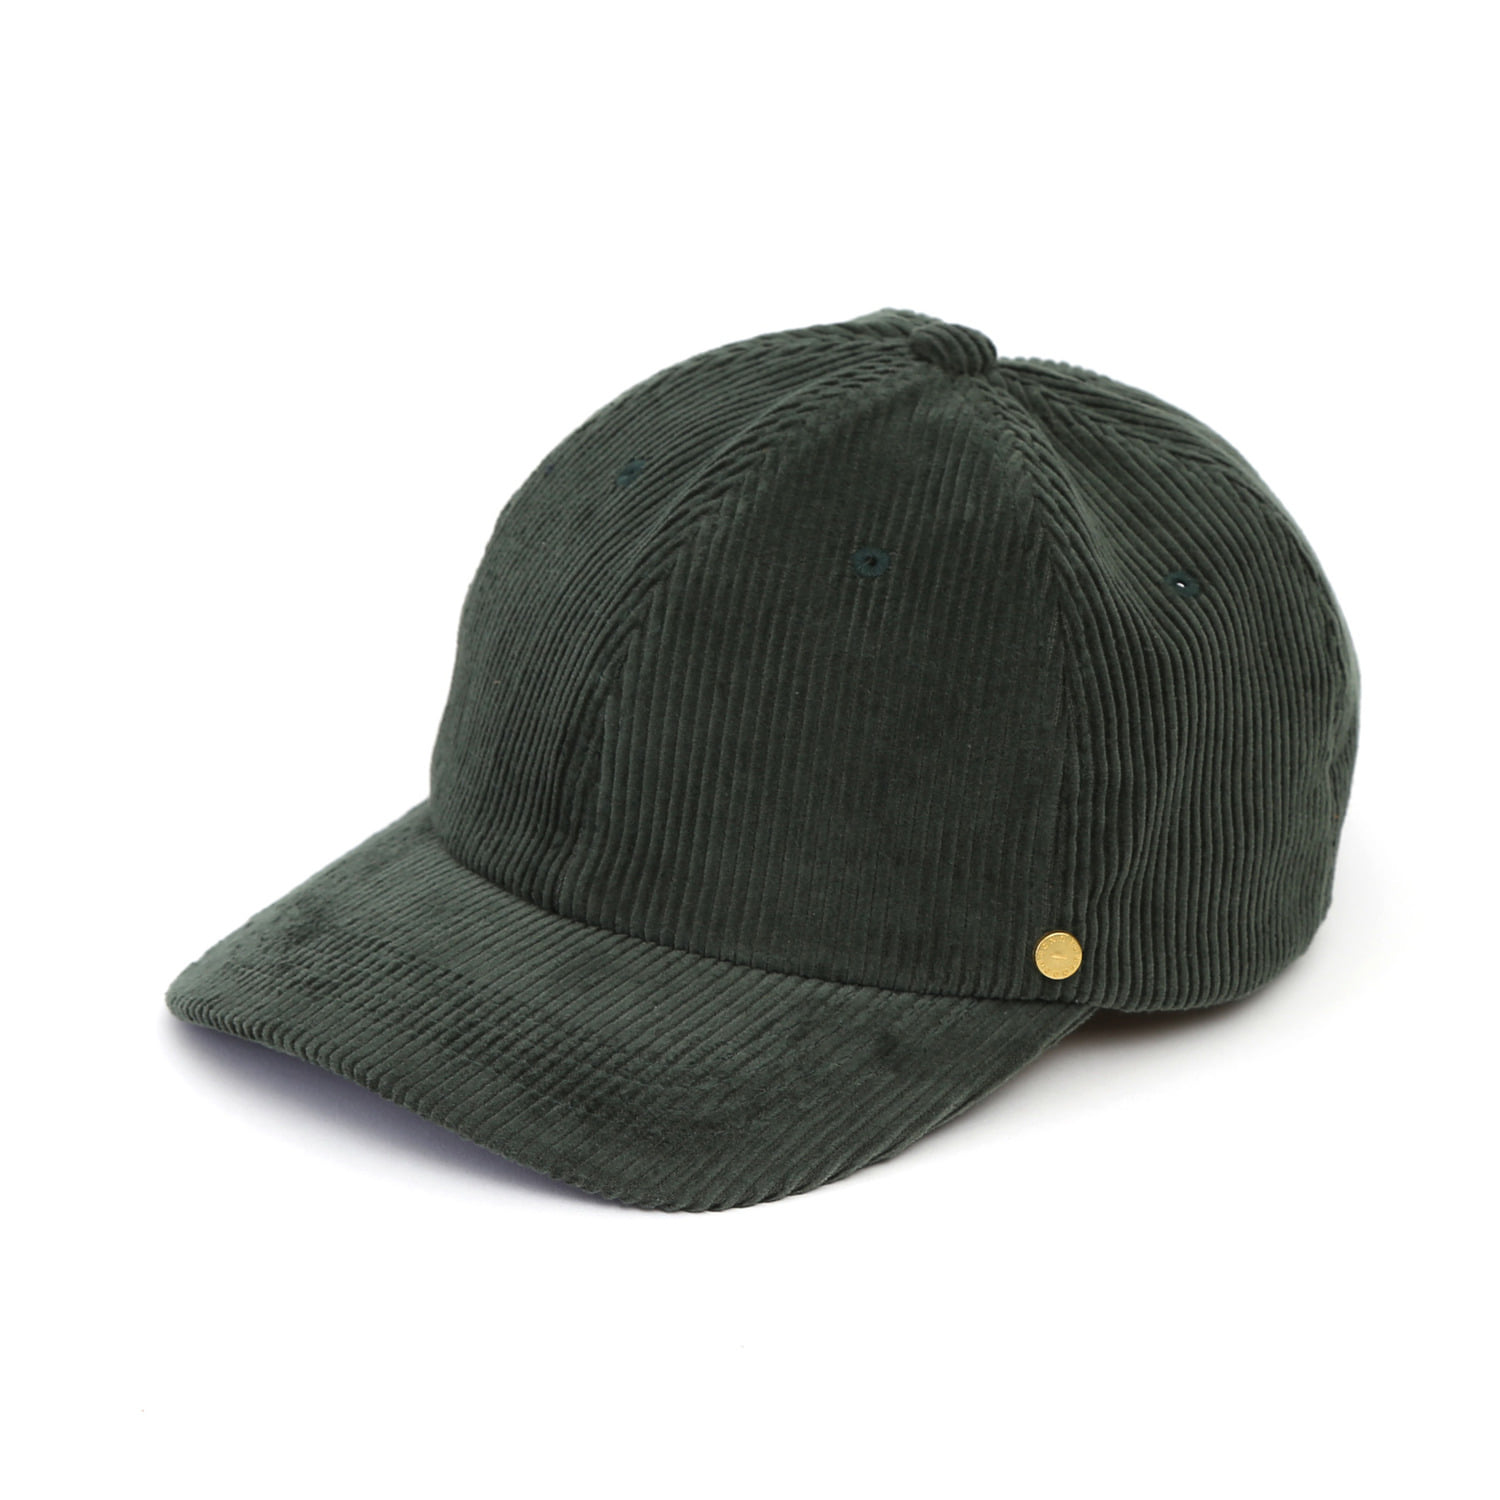 [2차 재입고] 6PANNEL BALL CAP / CORDUROY / FOREST